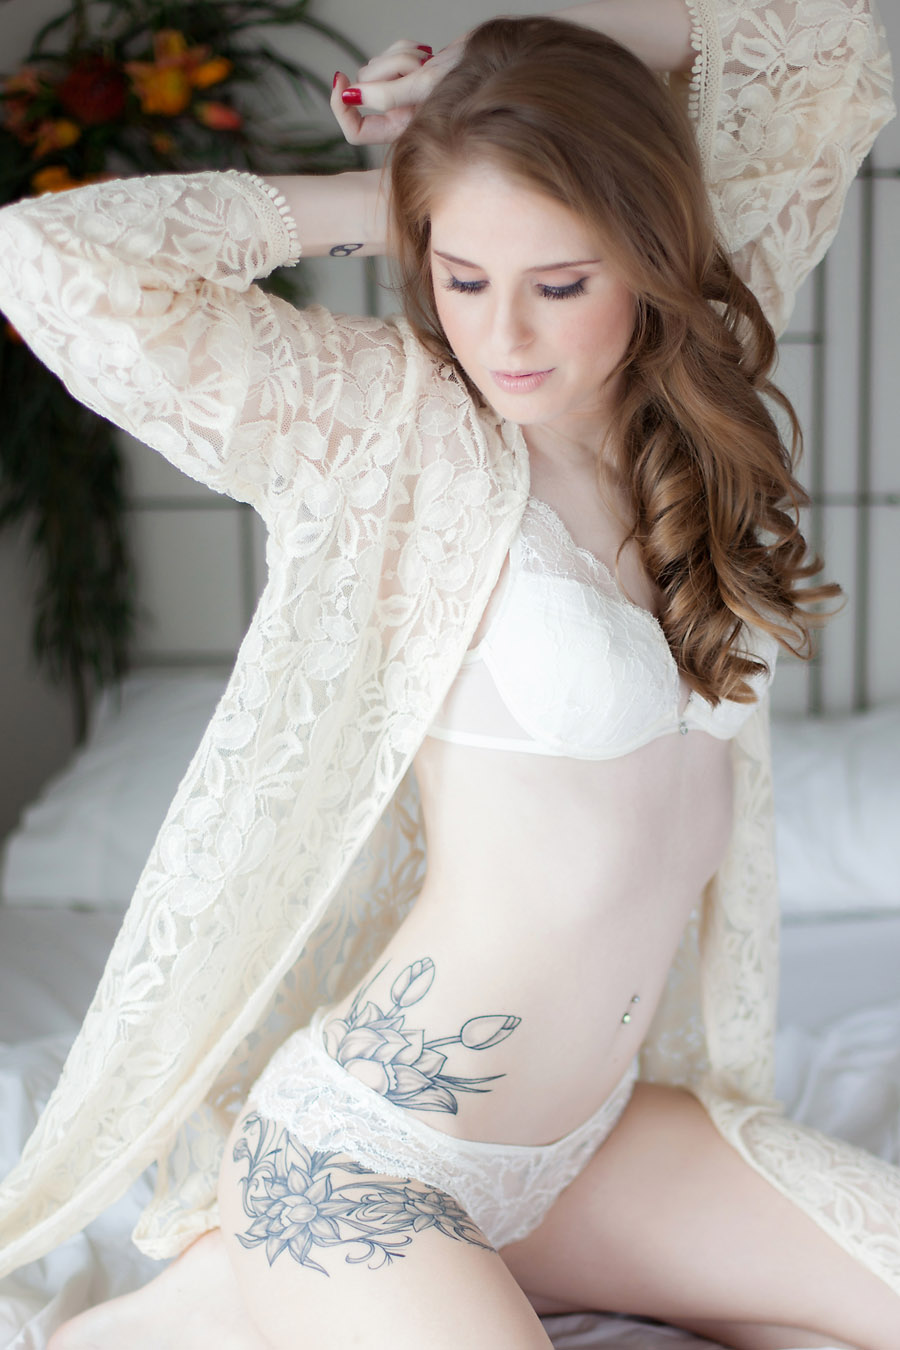 https://www.sheamayberry.com/wp-content/uploads/2015/04/30-1490-post/bridal-boudoir-shea-mayberry-photography-16.jpg